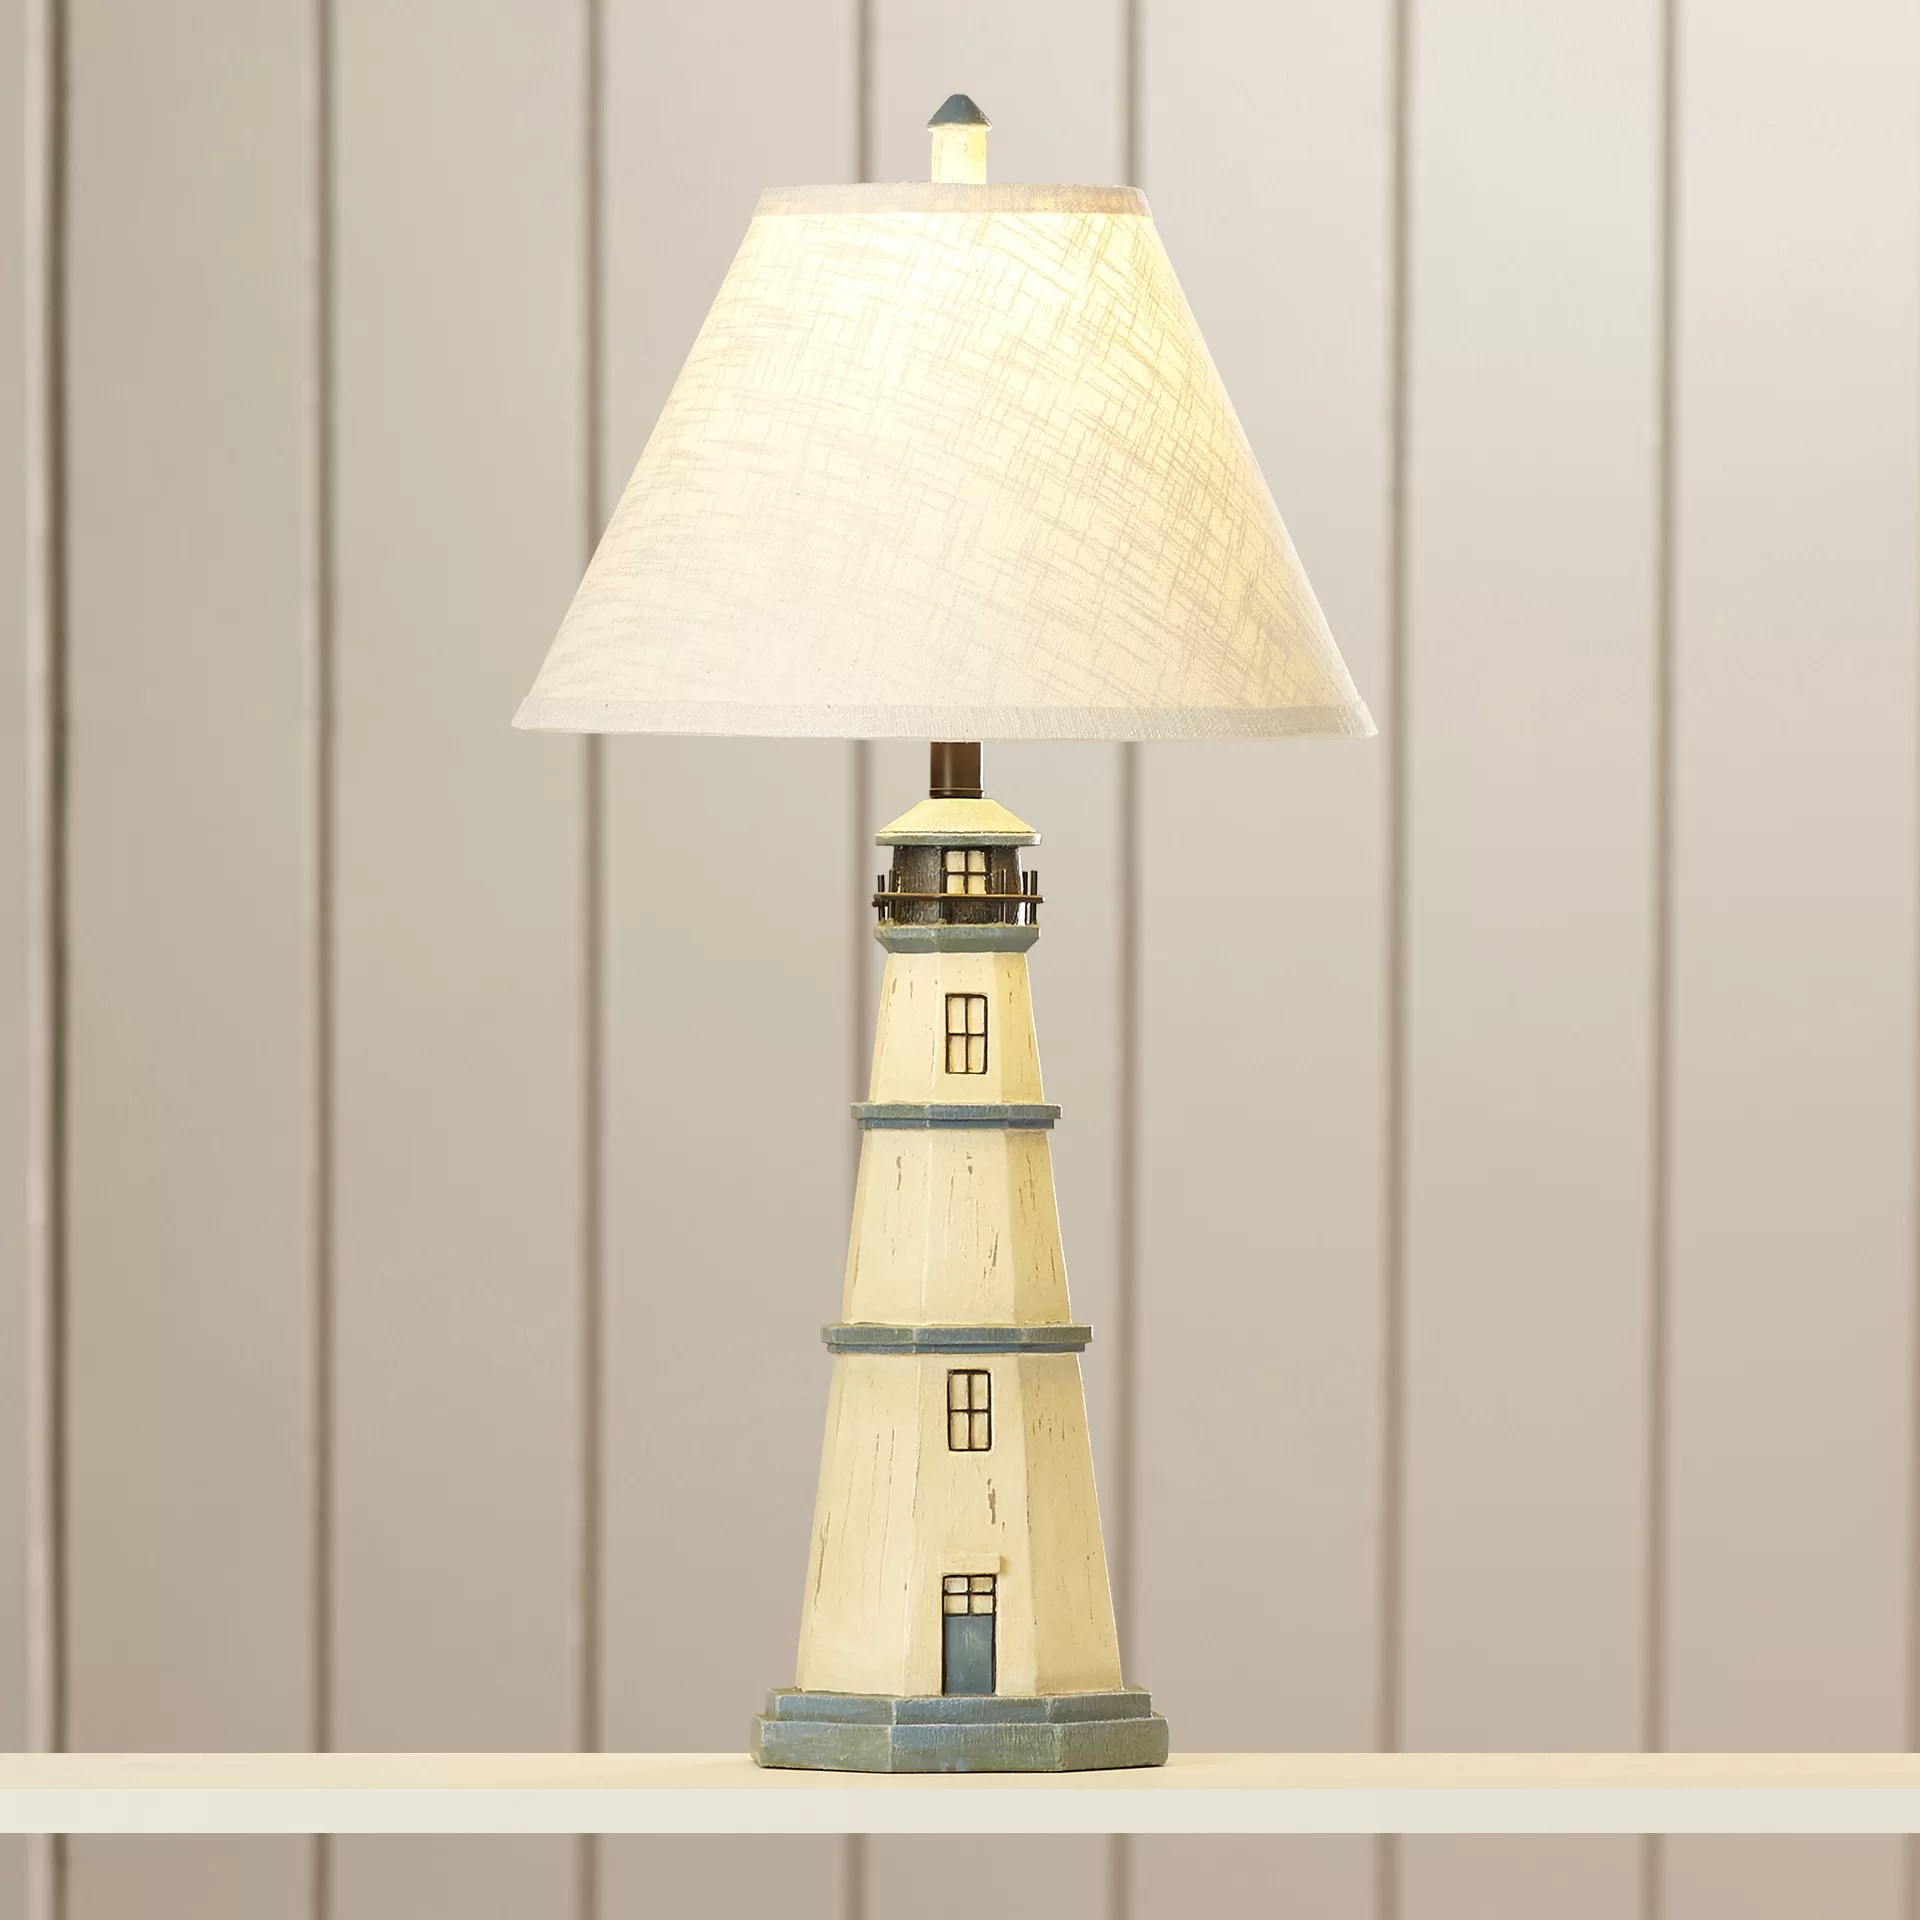 House Table Lamp Breakwater Bay Ocean Village Light House 31 75 Quot Table Lamp